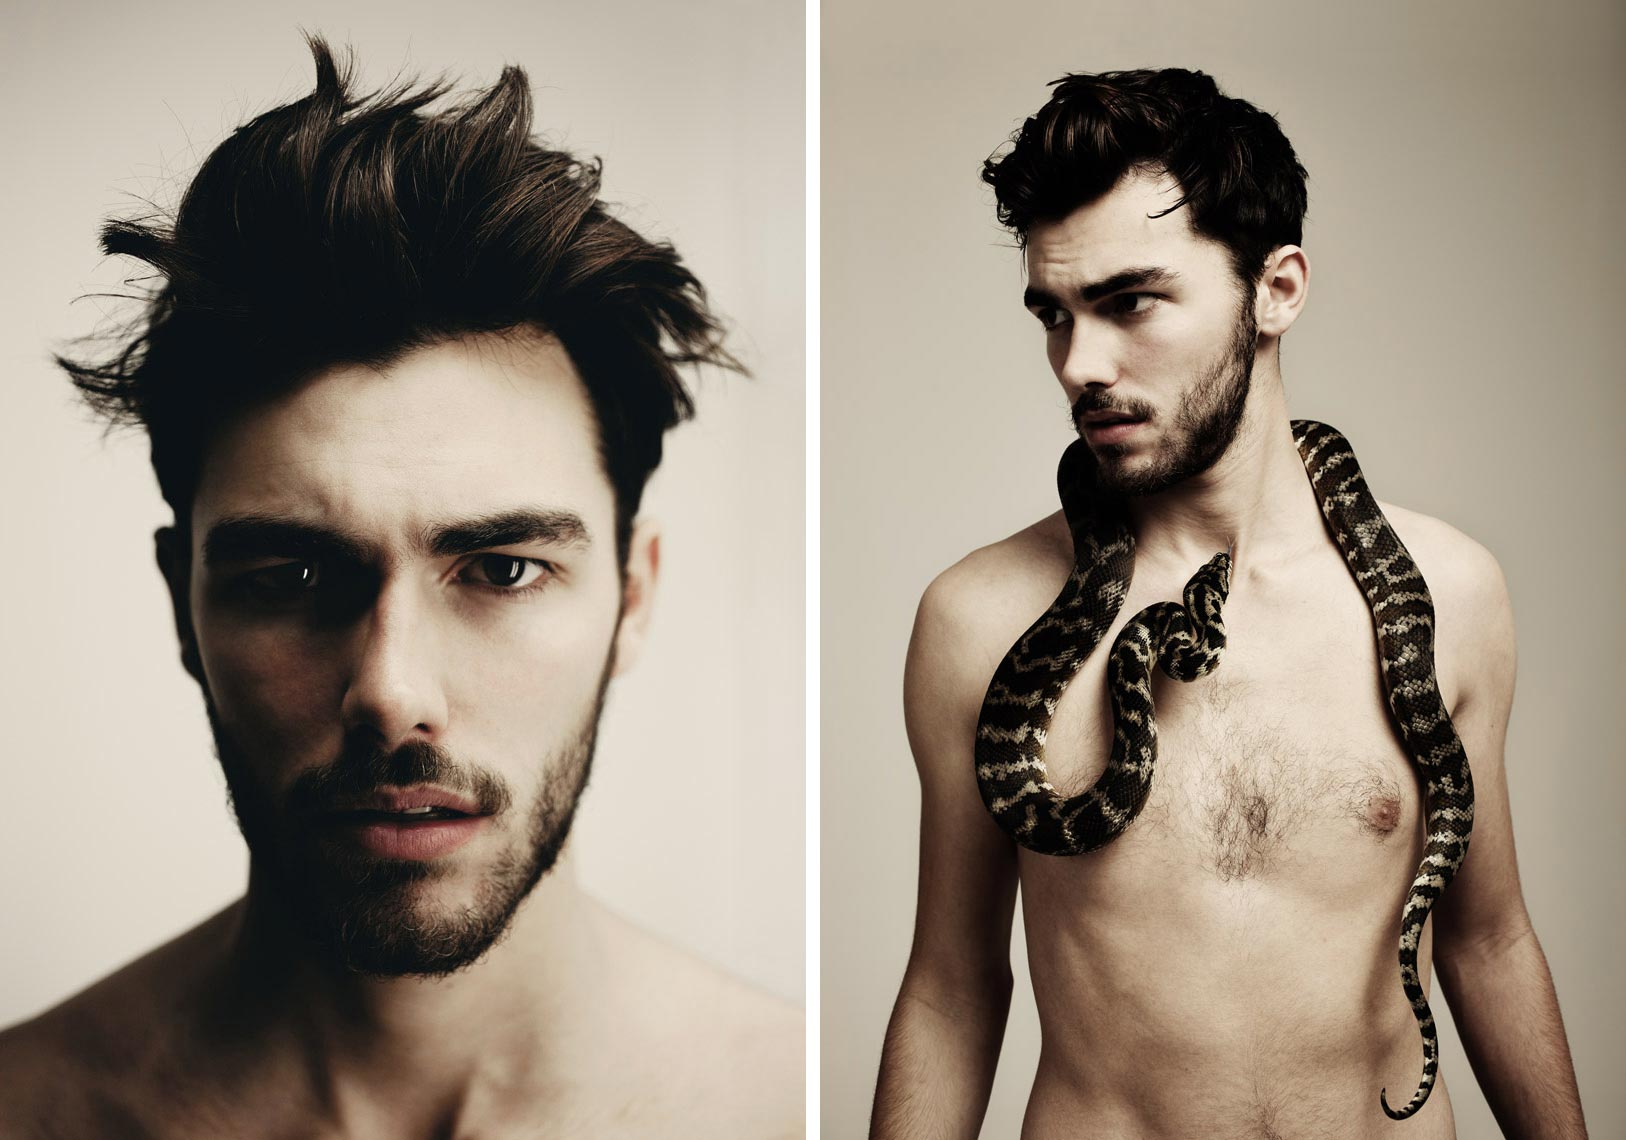 James with snake